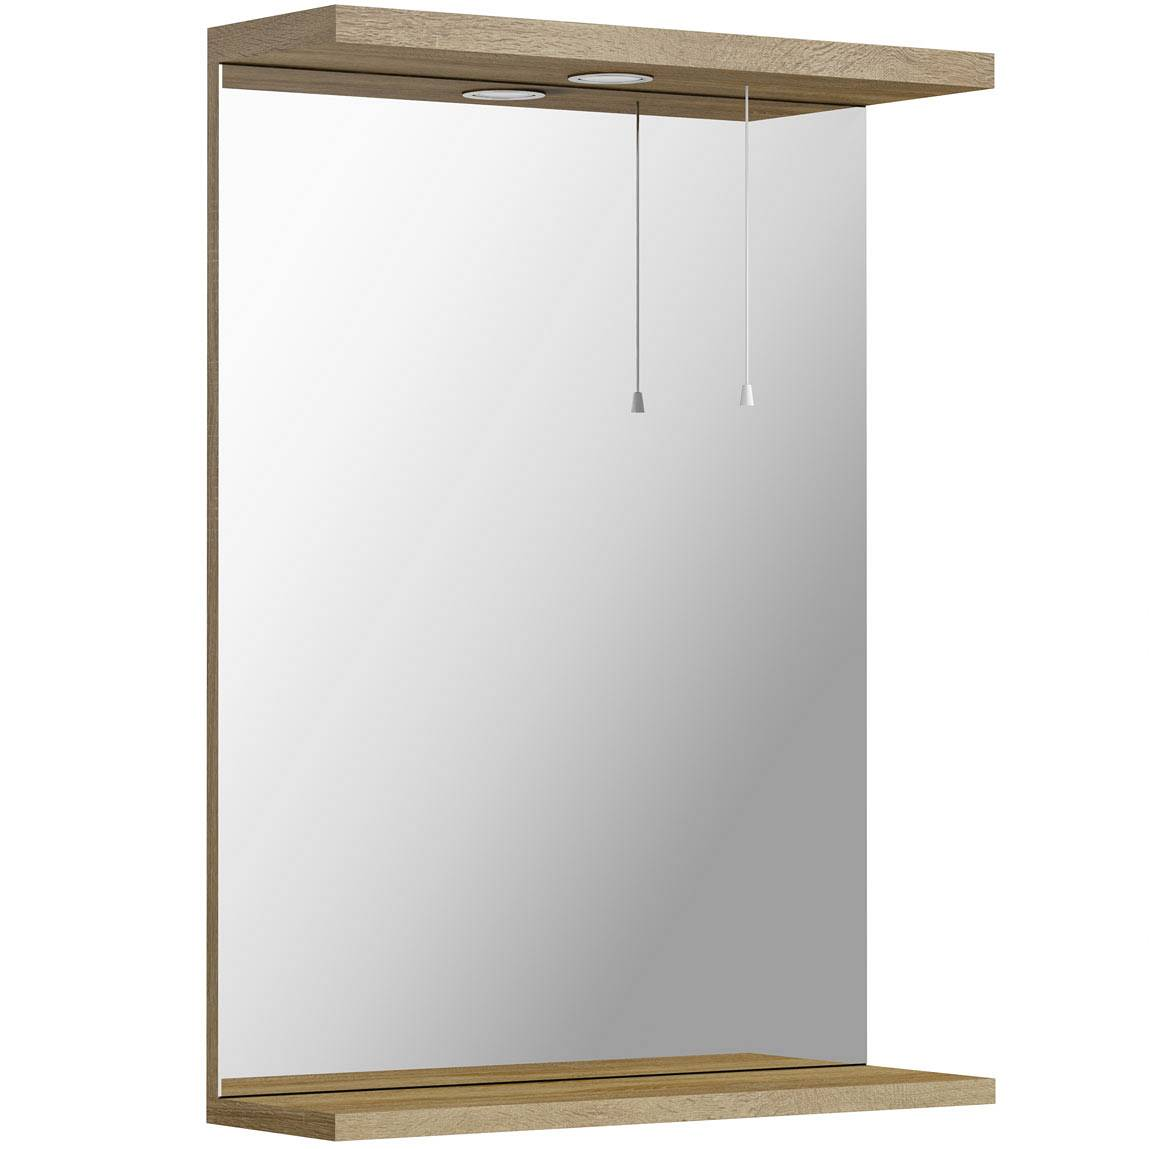 Image of Sienna Oak 55 Mirror with lights